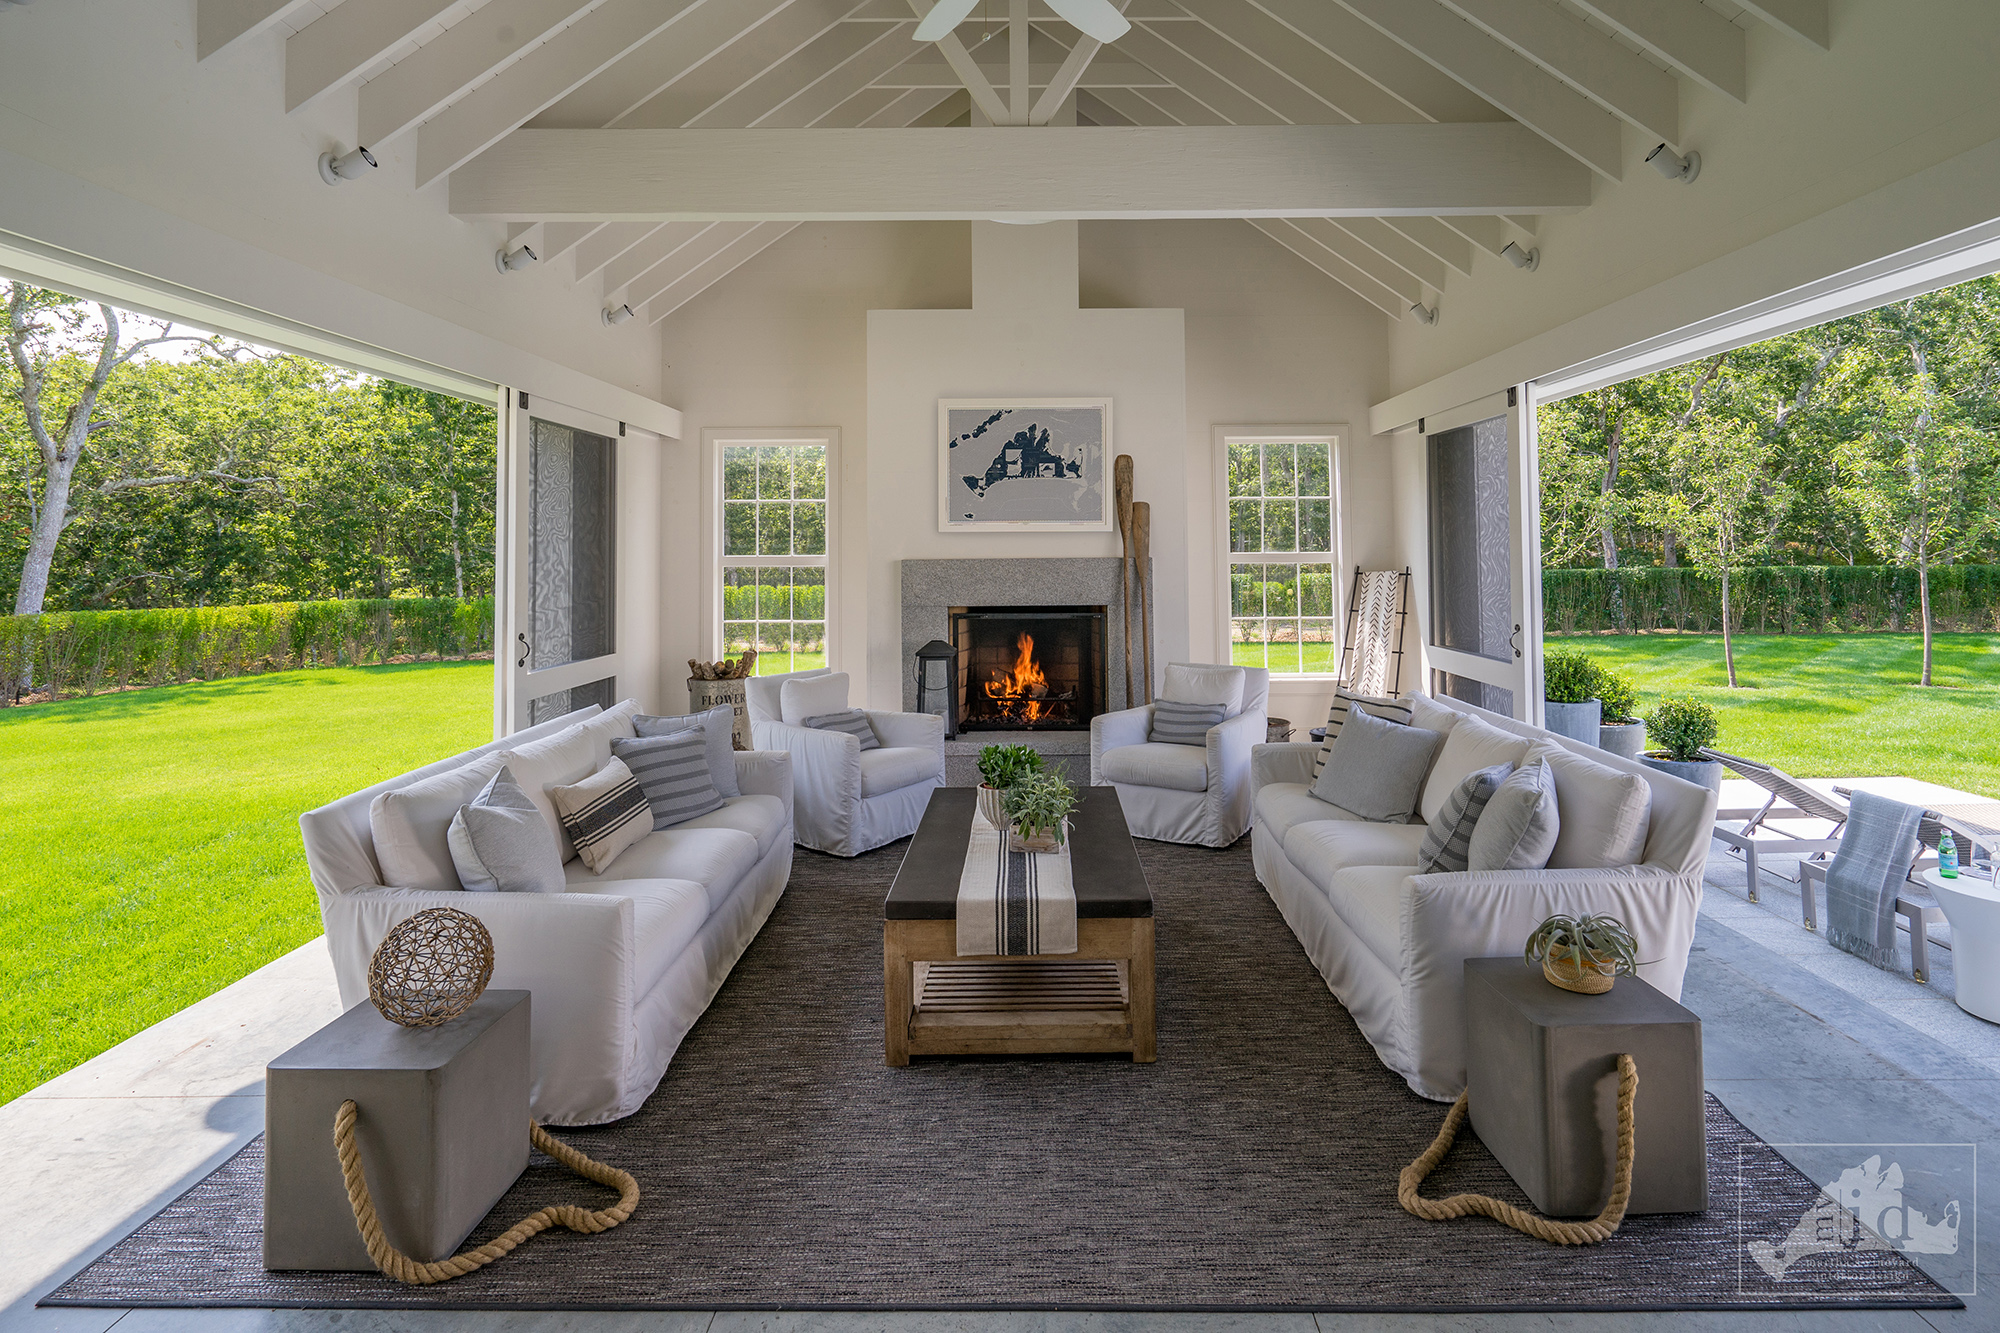 HIgh-end screened porch with fireplace